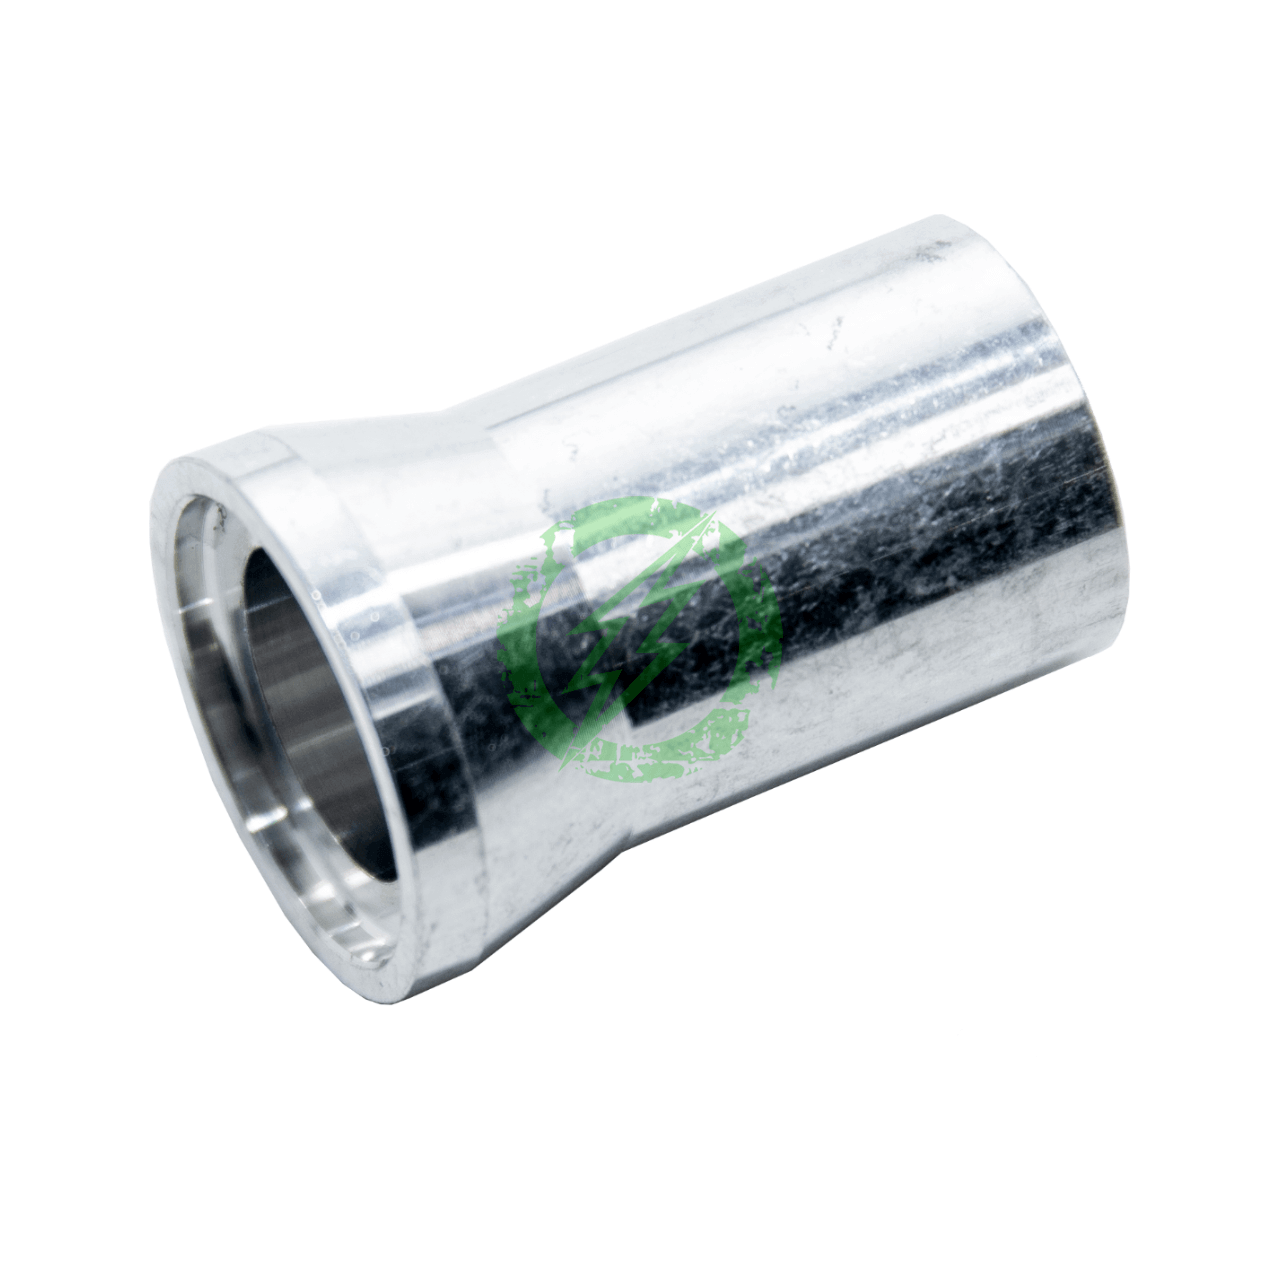 Siegetek Spring Guide Spacer for Cyclone System